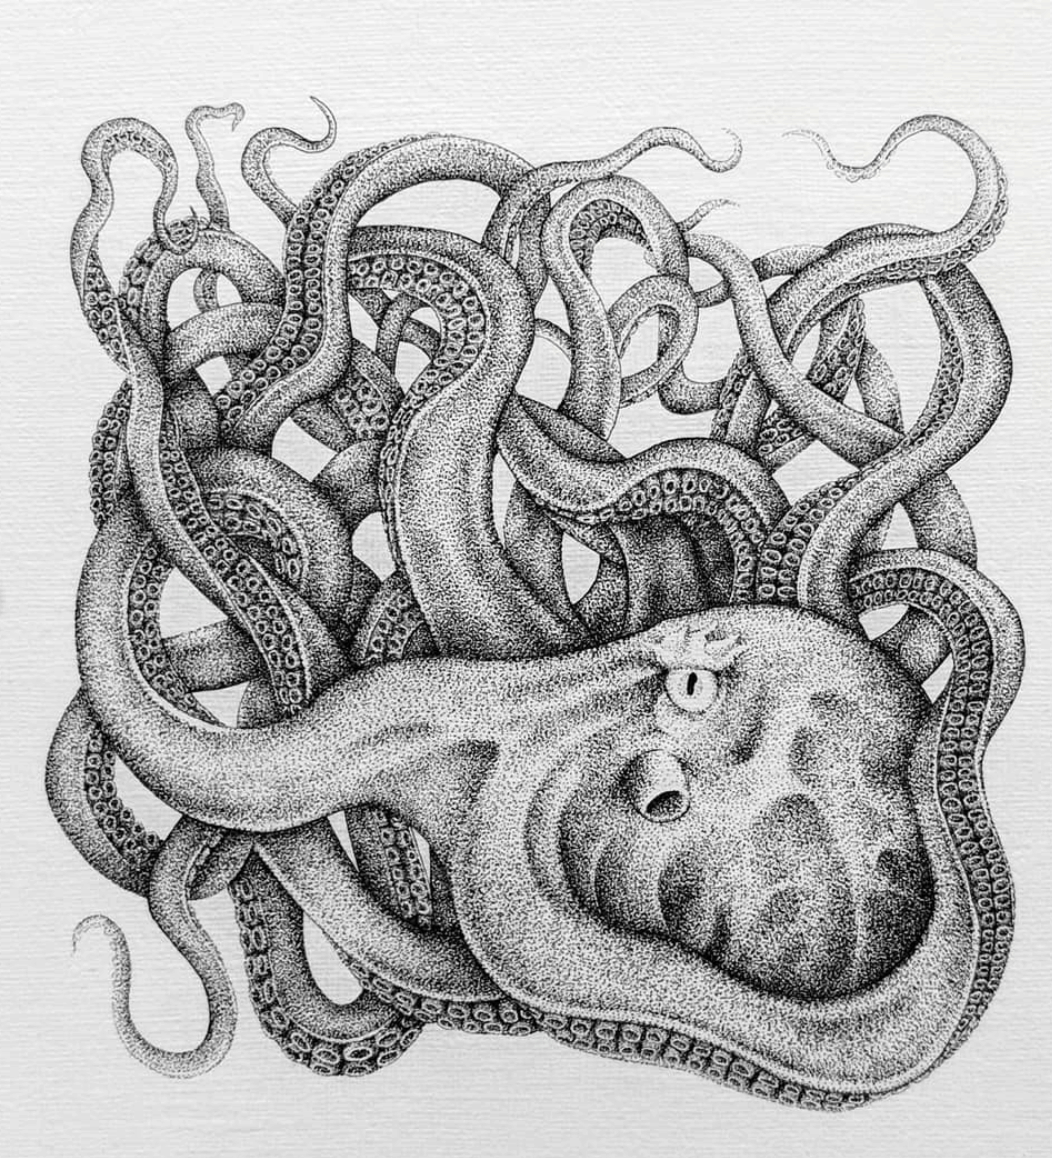 Aridz1 octopus drawing